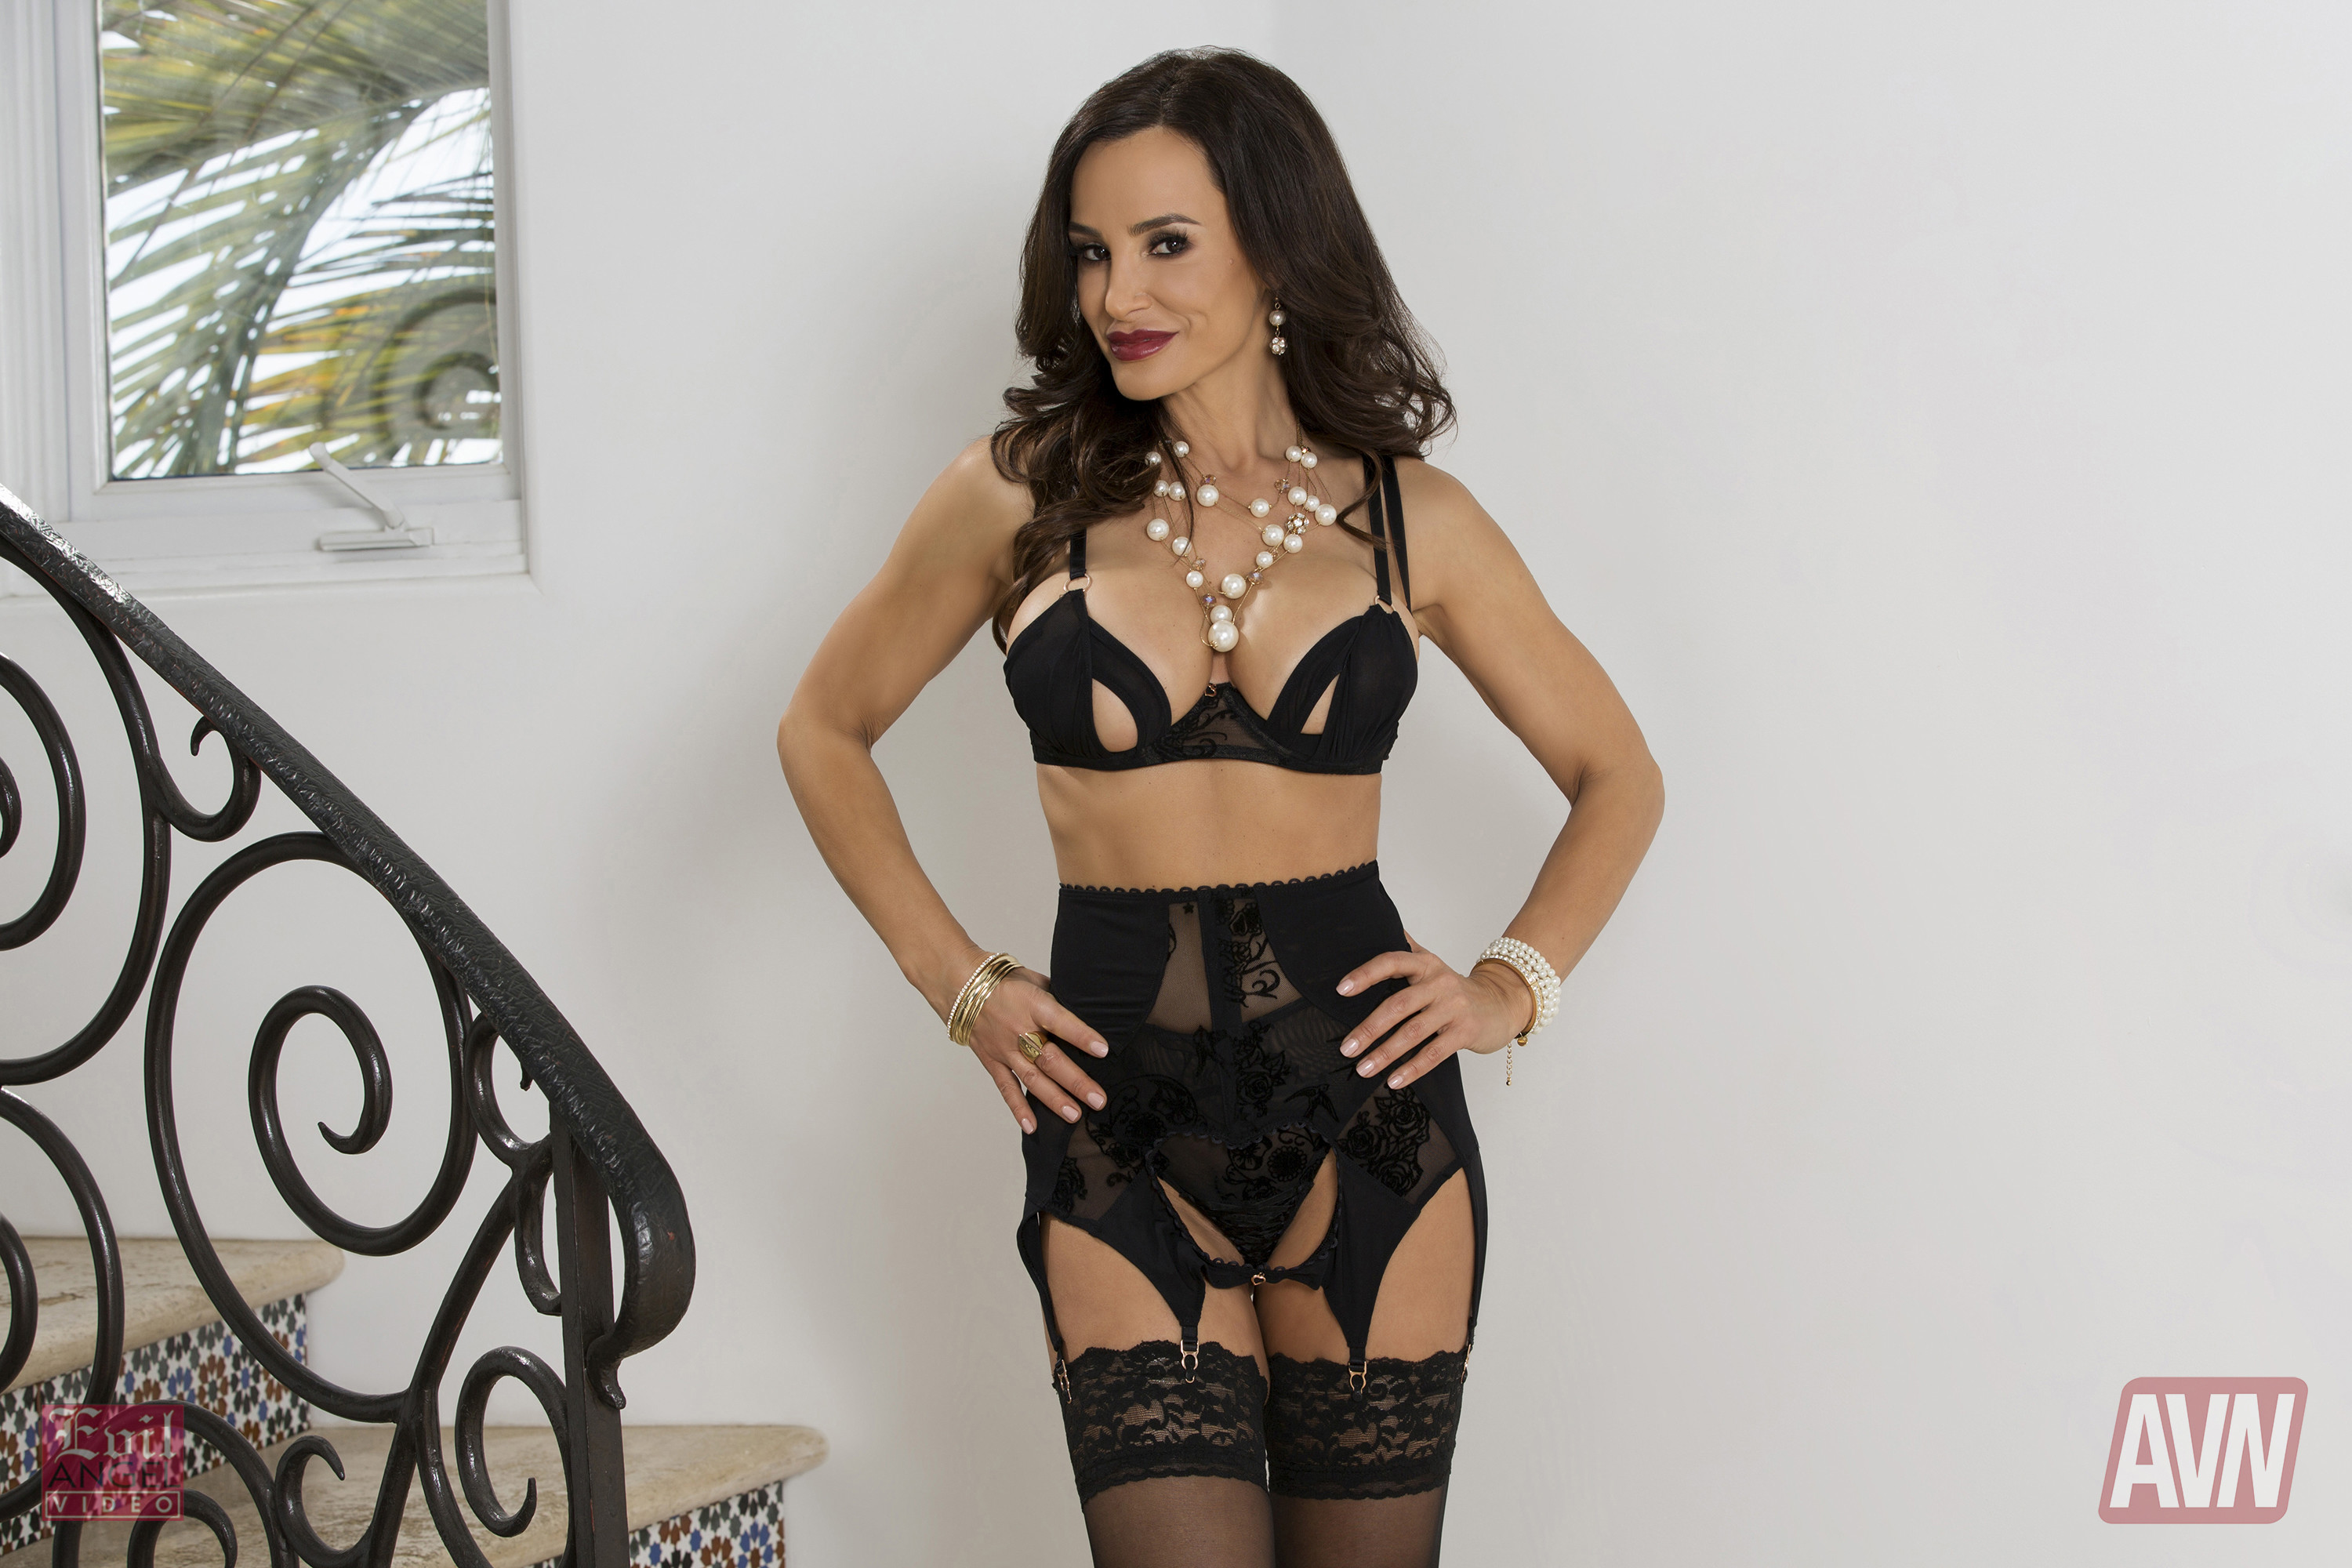 Foto xxx lisa ann 2018 can help